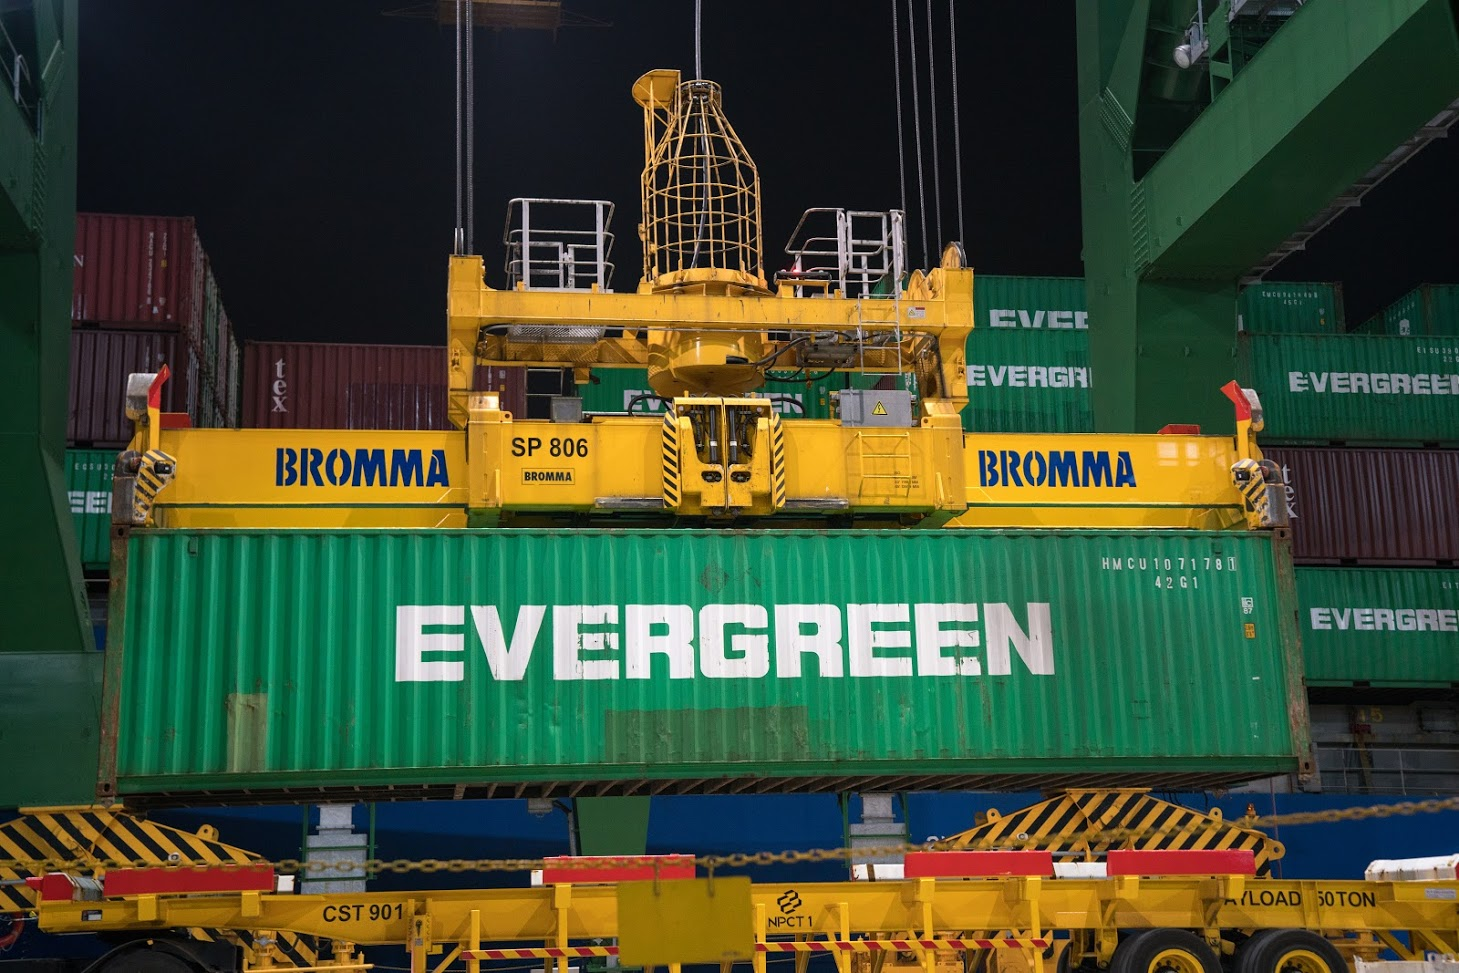 Bromma reports upticks in a number of markets